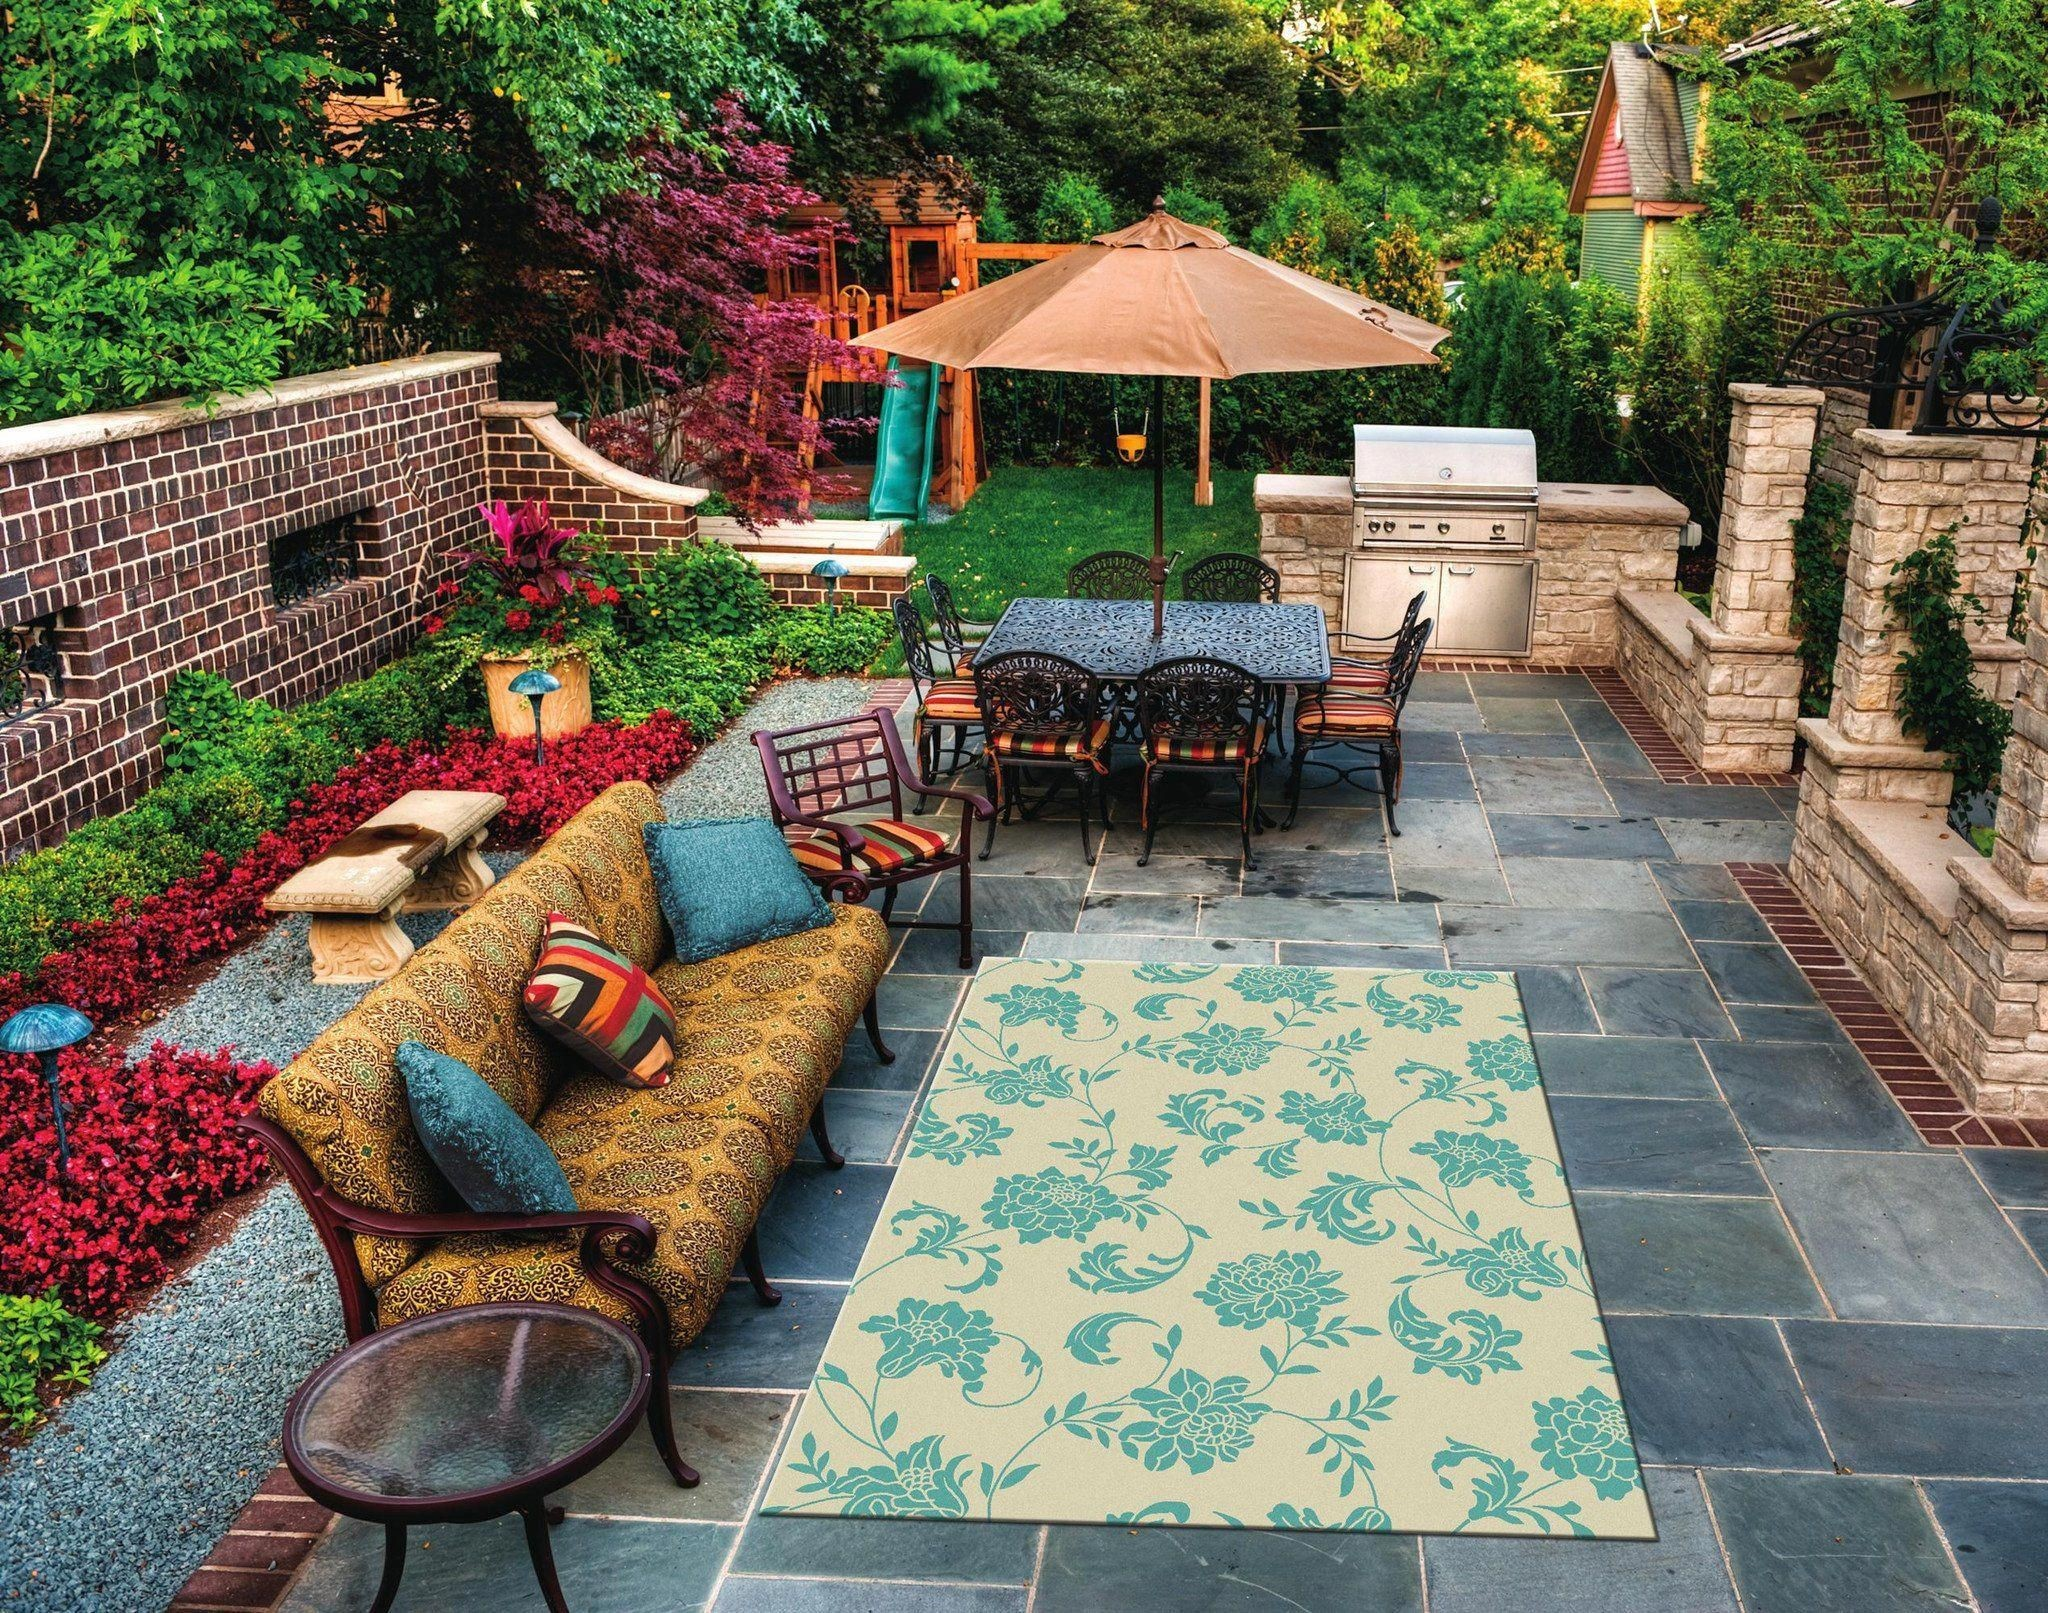 Stamped concrete, outdoor rug and patio furniture